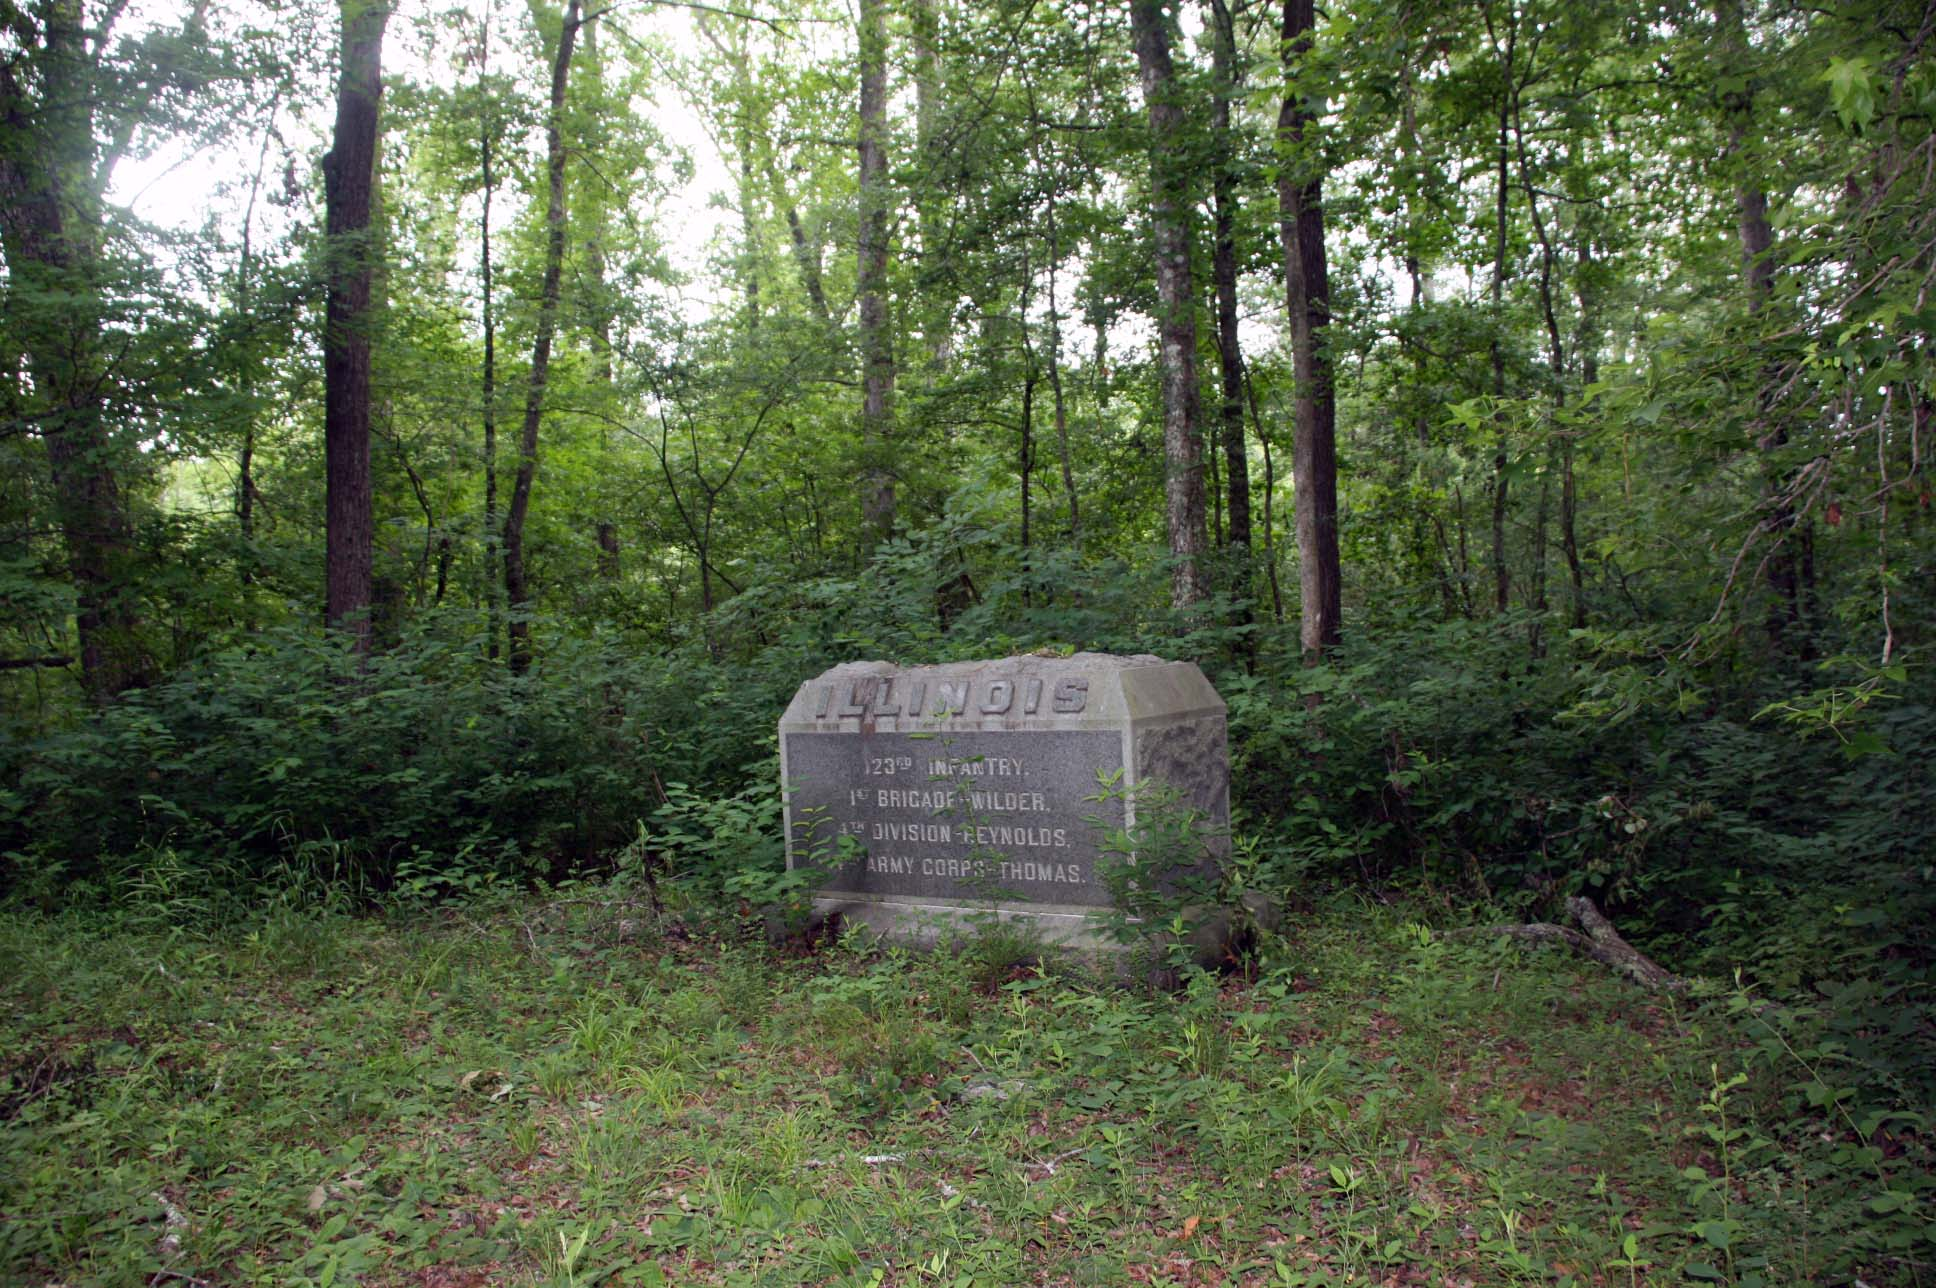 123rd Illinois Infantry Monument, click photo to enlarge.